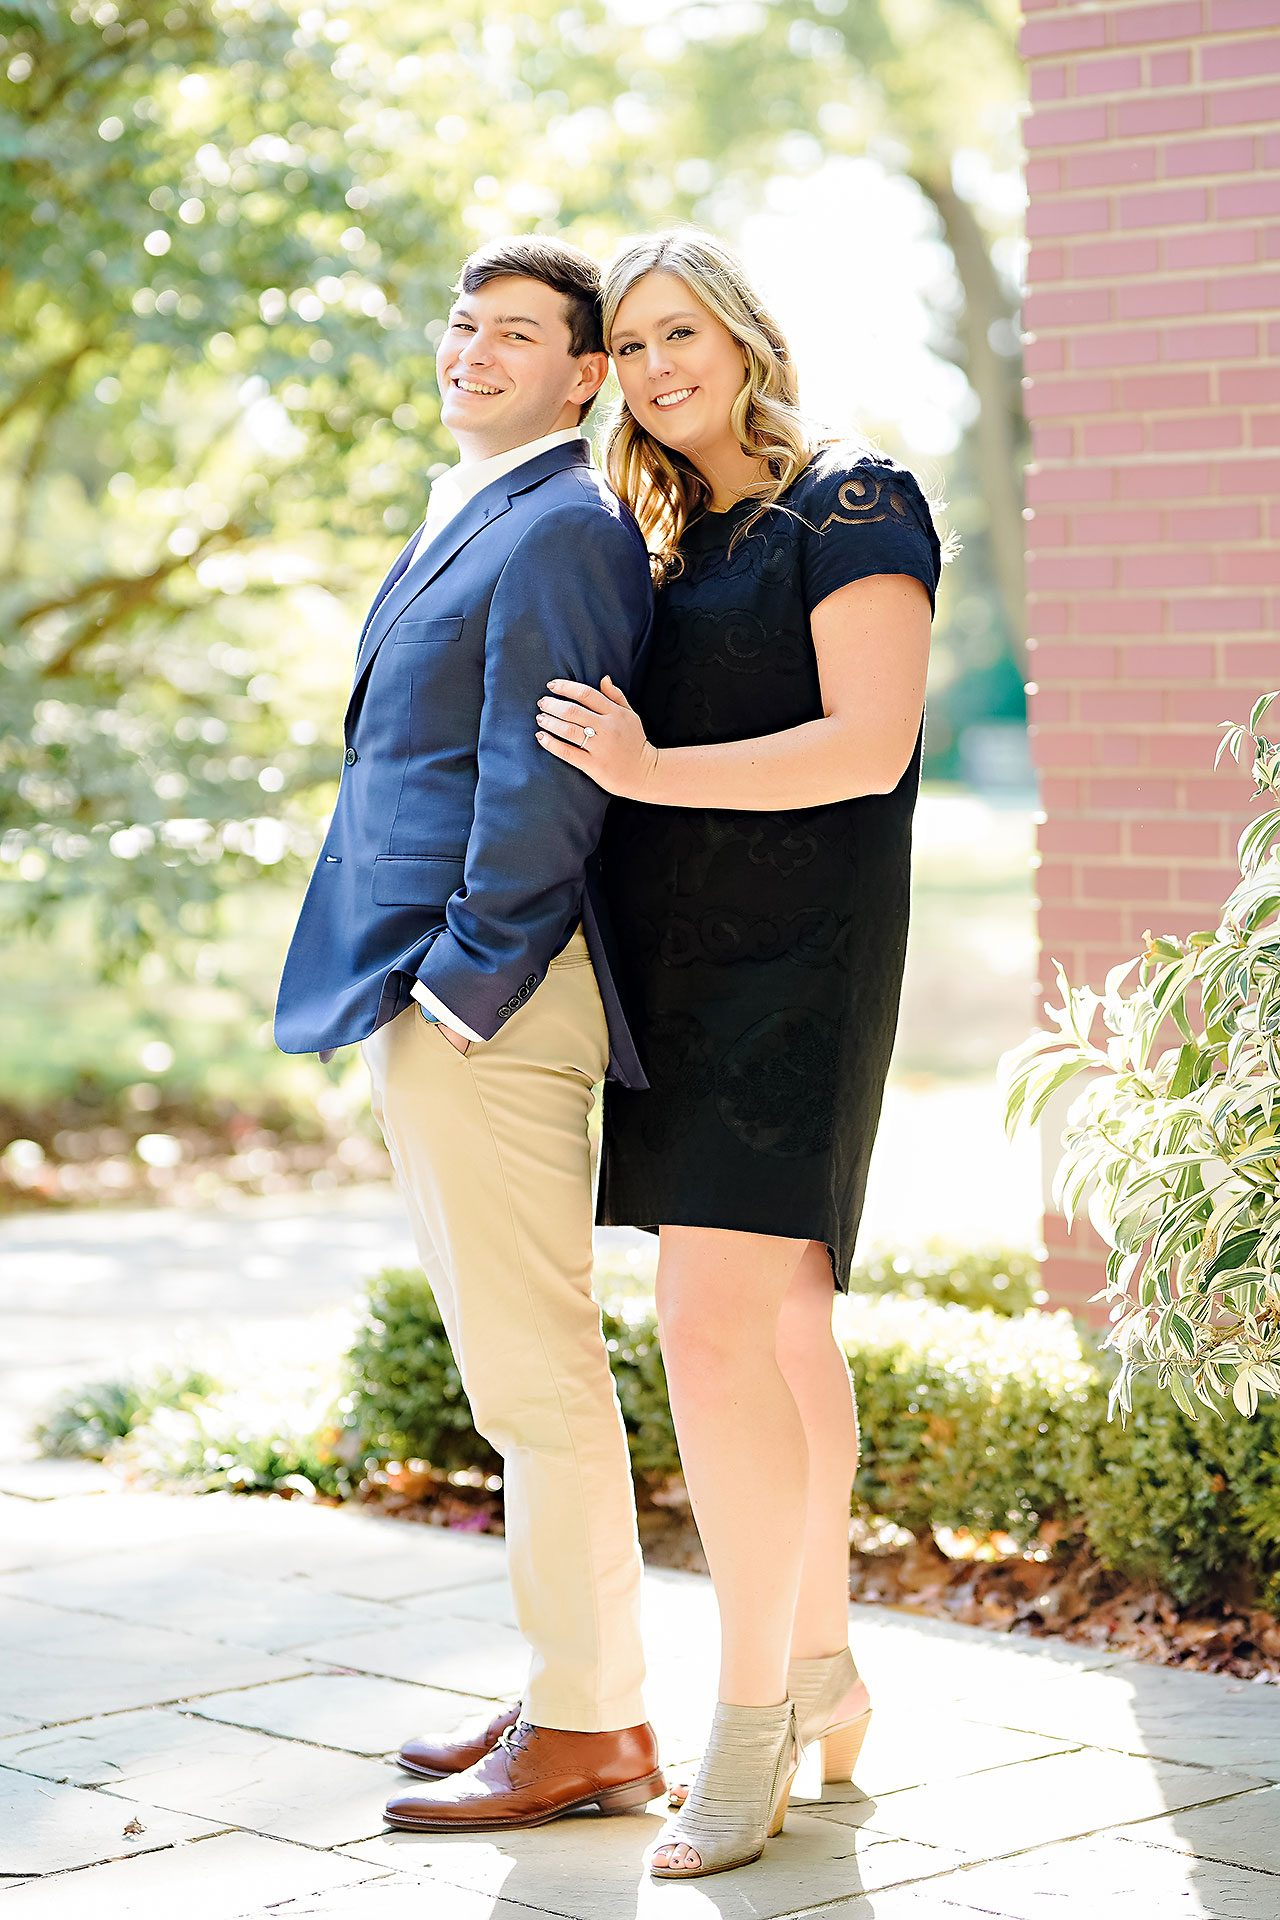 Taylor Case Newfields Engagement Session 026